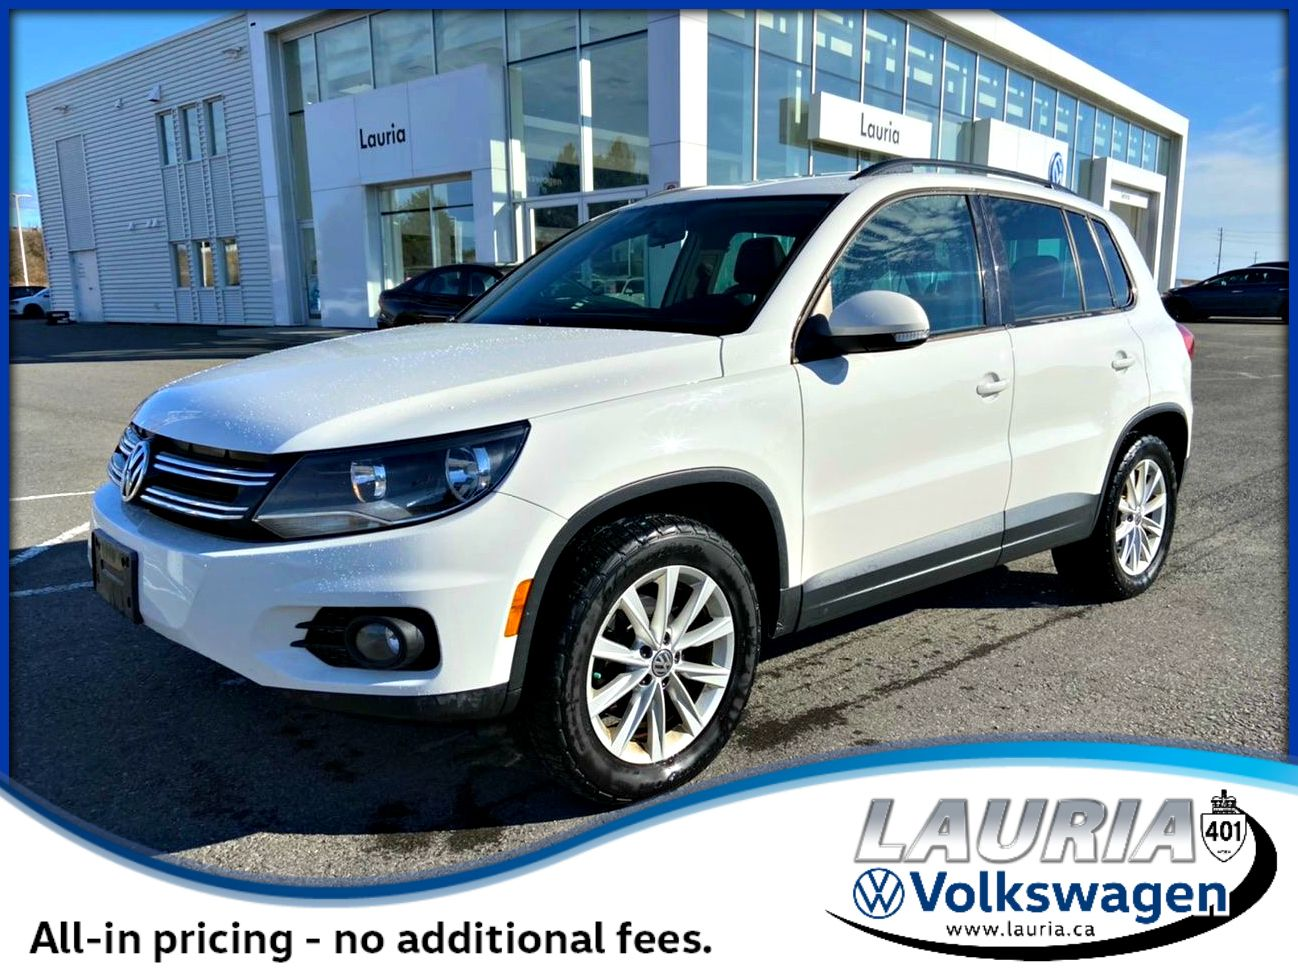 Pre-Owned 2012 Volkswagen Tiguan Comfortline 4Motion AWD - LOW KMS